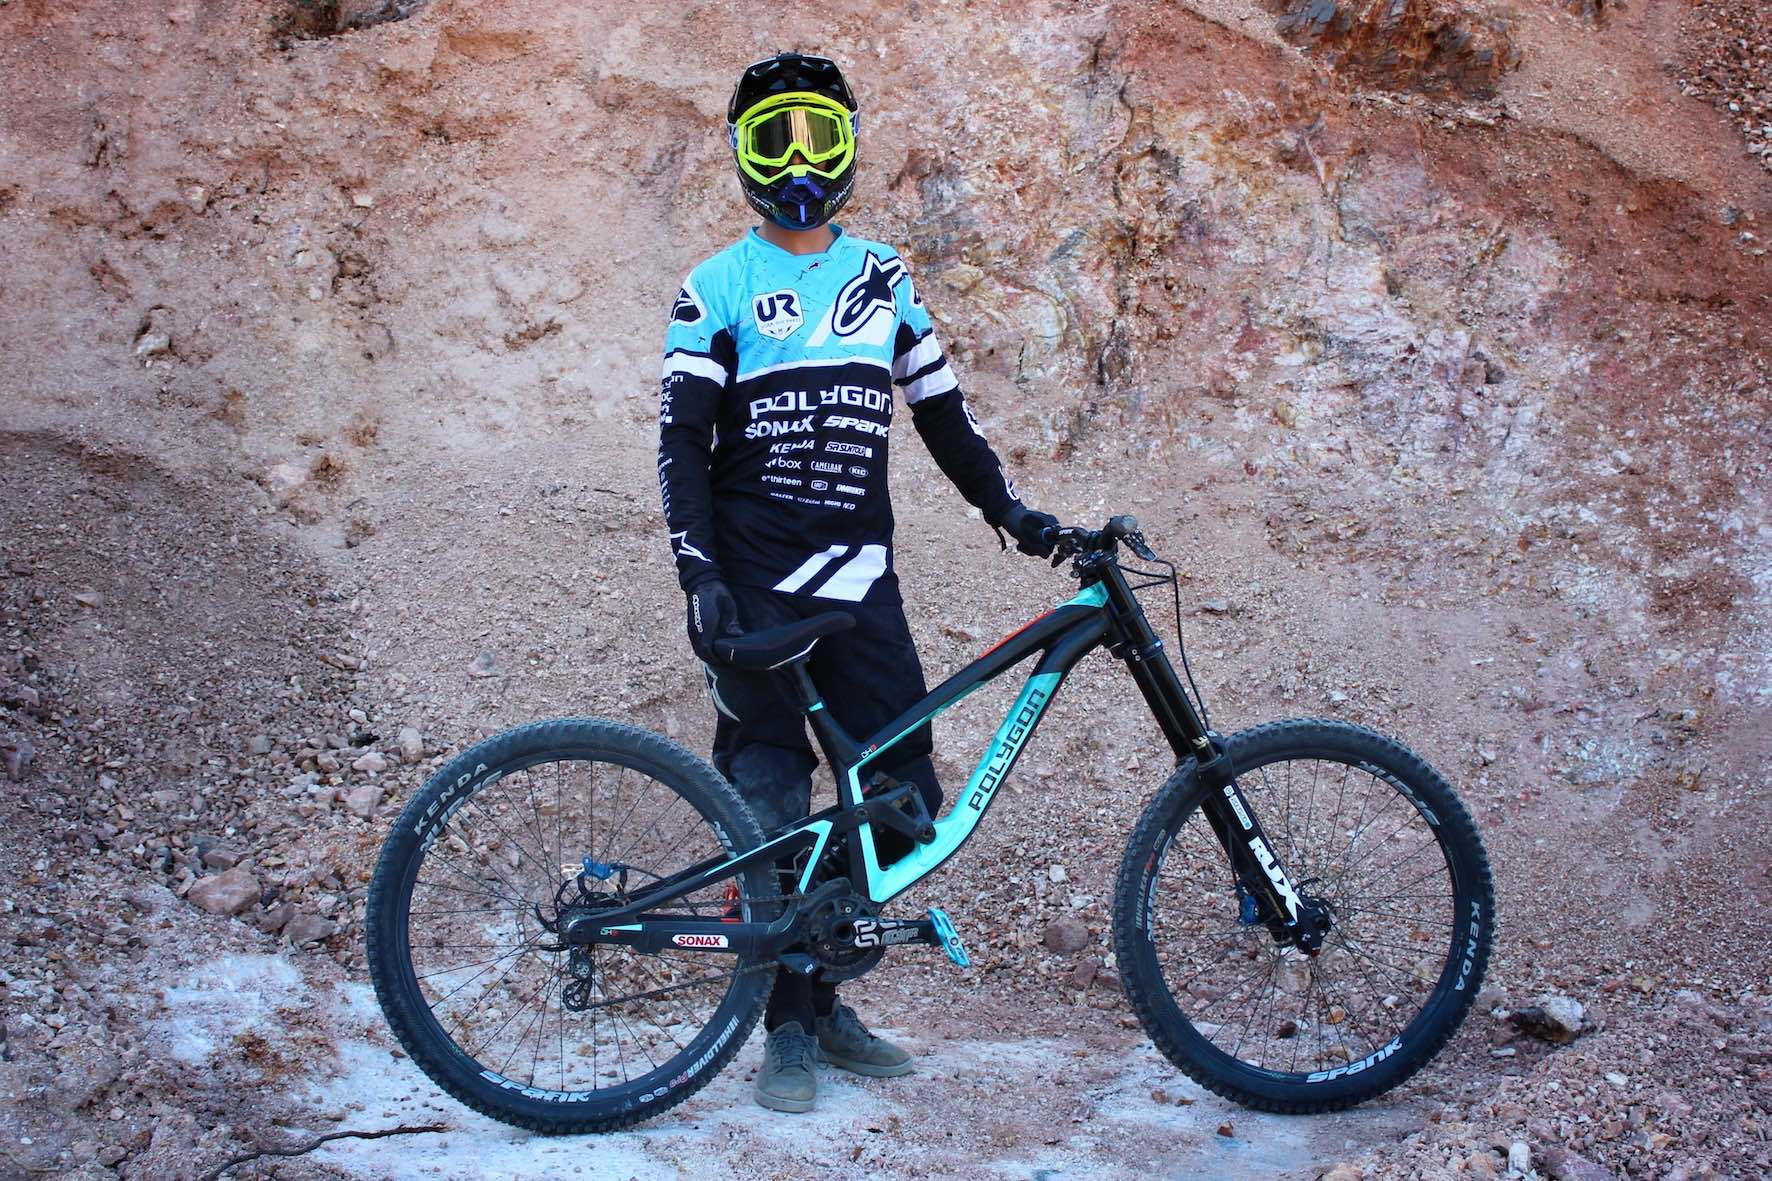 Sam Reynolds Polygon DH9 Audi Nines Bike